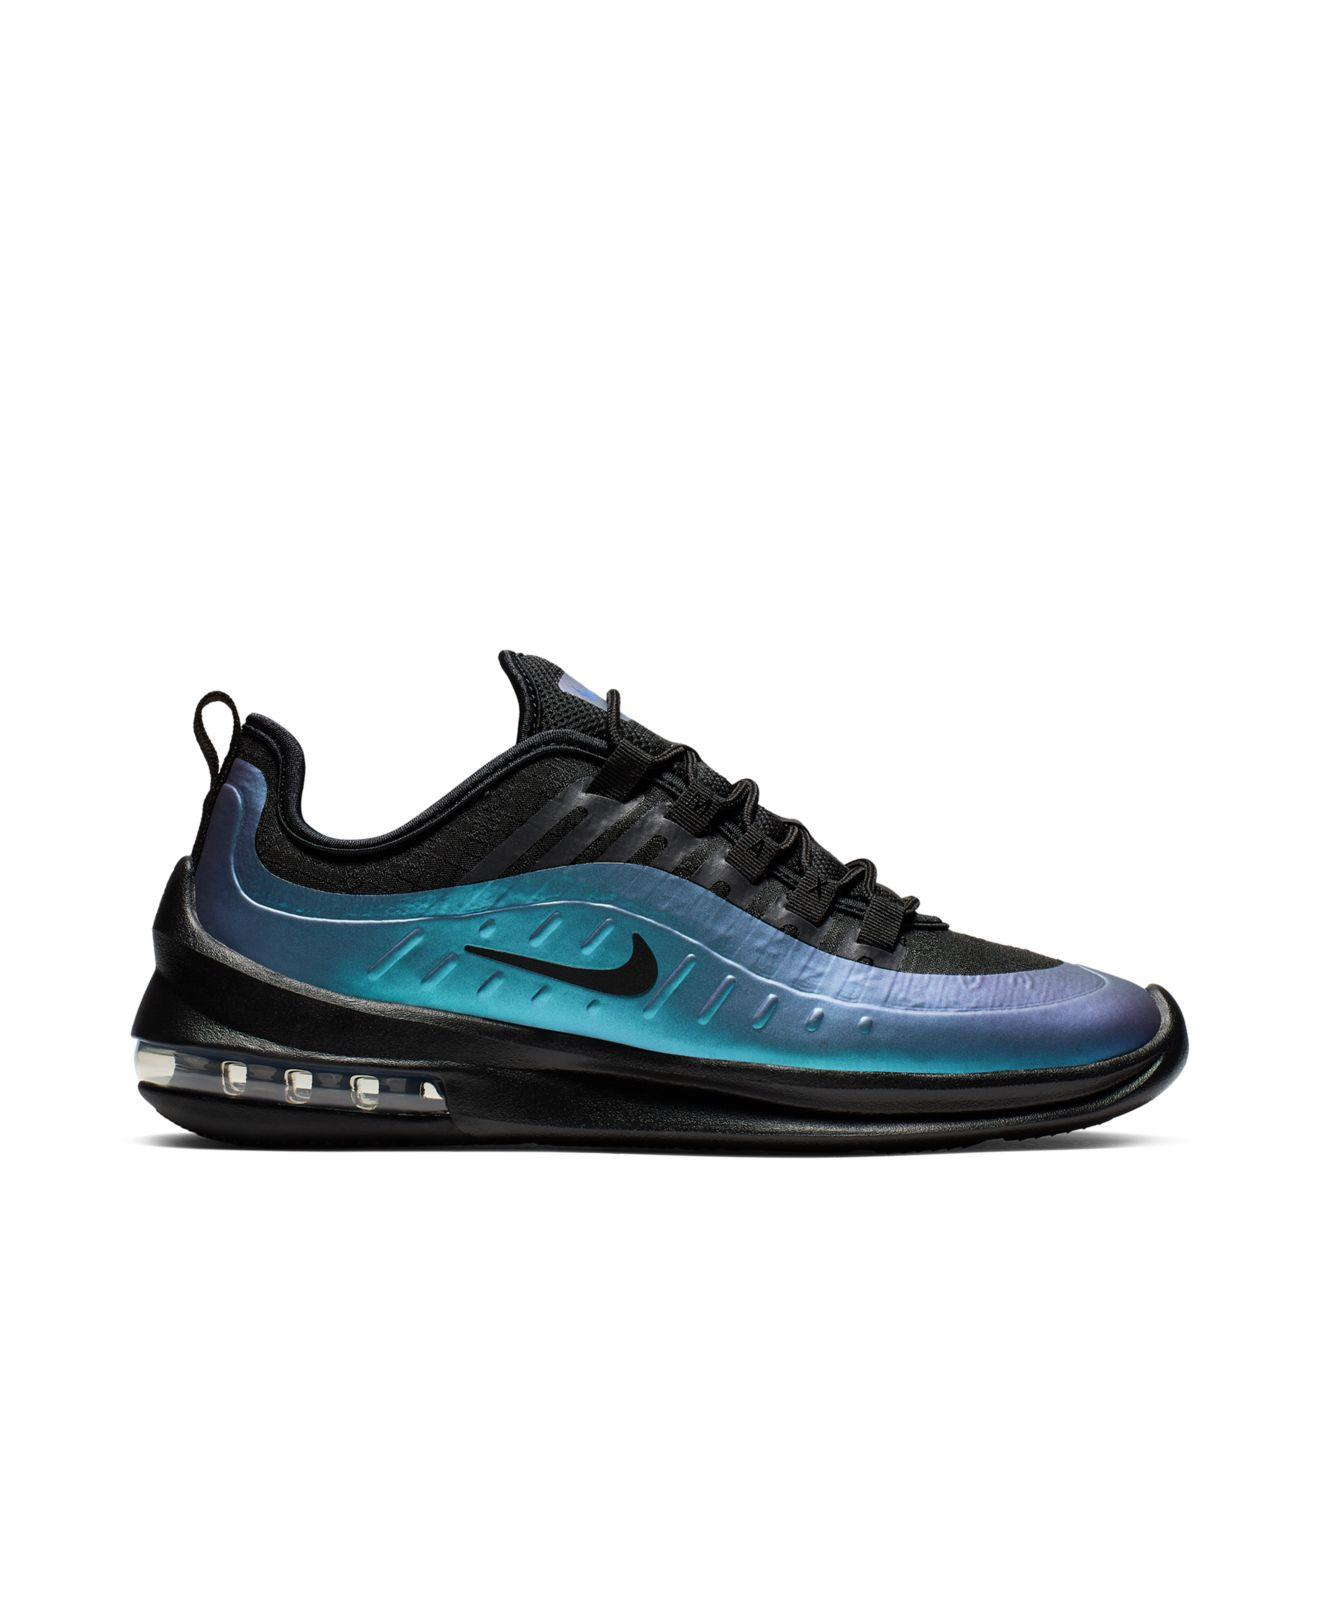 lowest price dba6a 12d0b Nike Air Max Axis Premium Casual Sneakers From Finish Line in Black ...